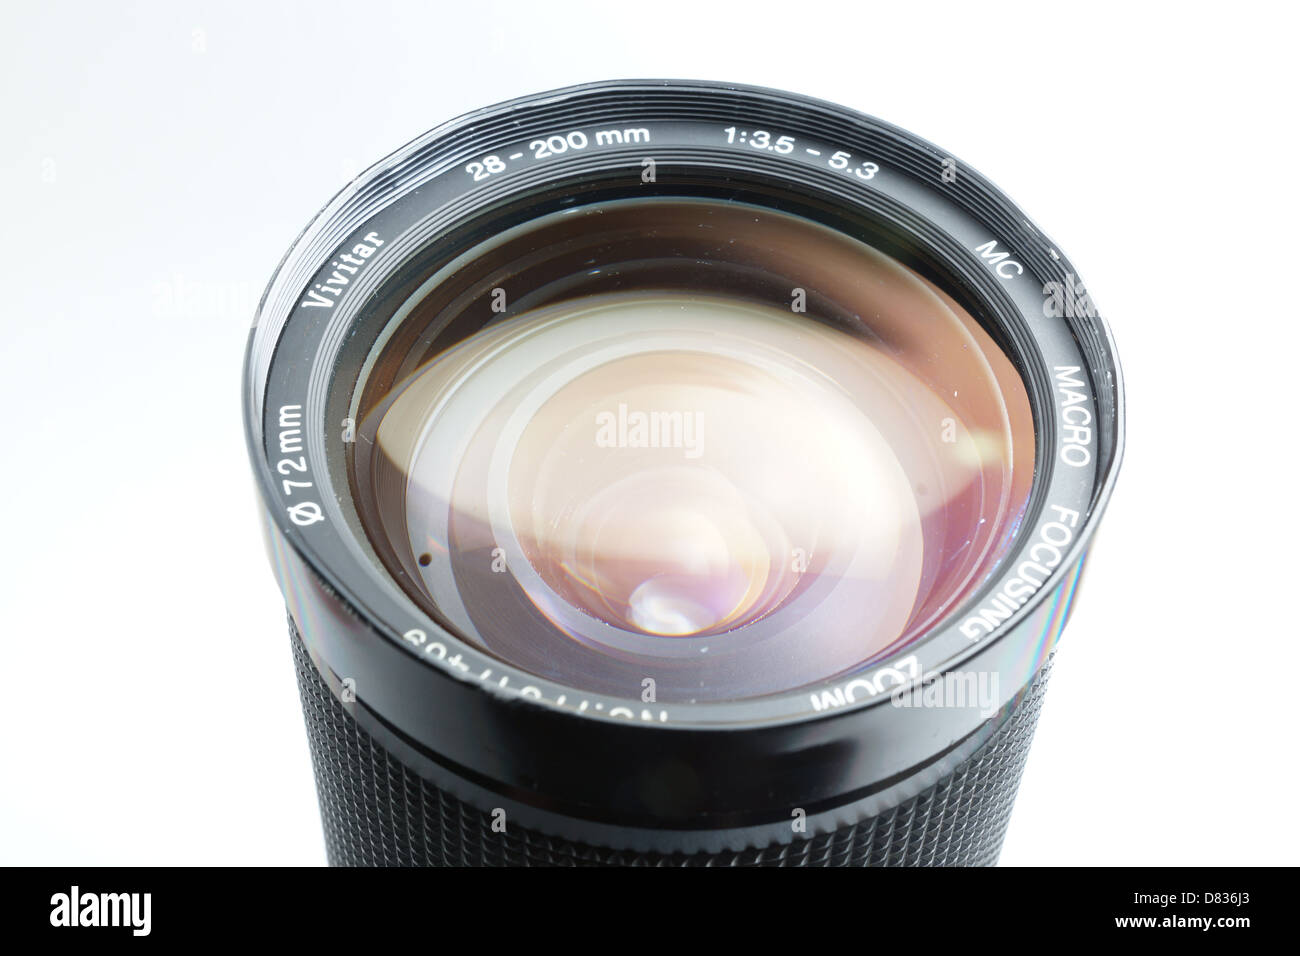 Camera lens for Canon FD, Vivitar brand 28-200mm zoom - Stock Image